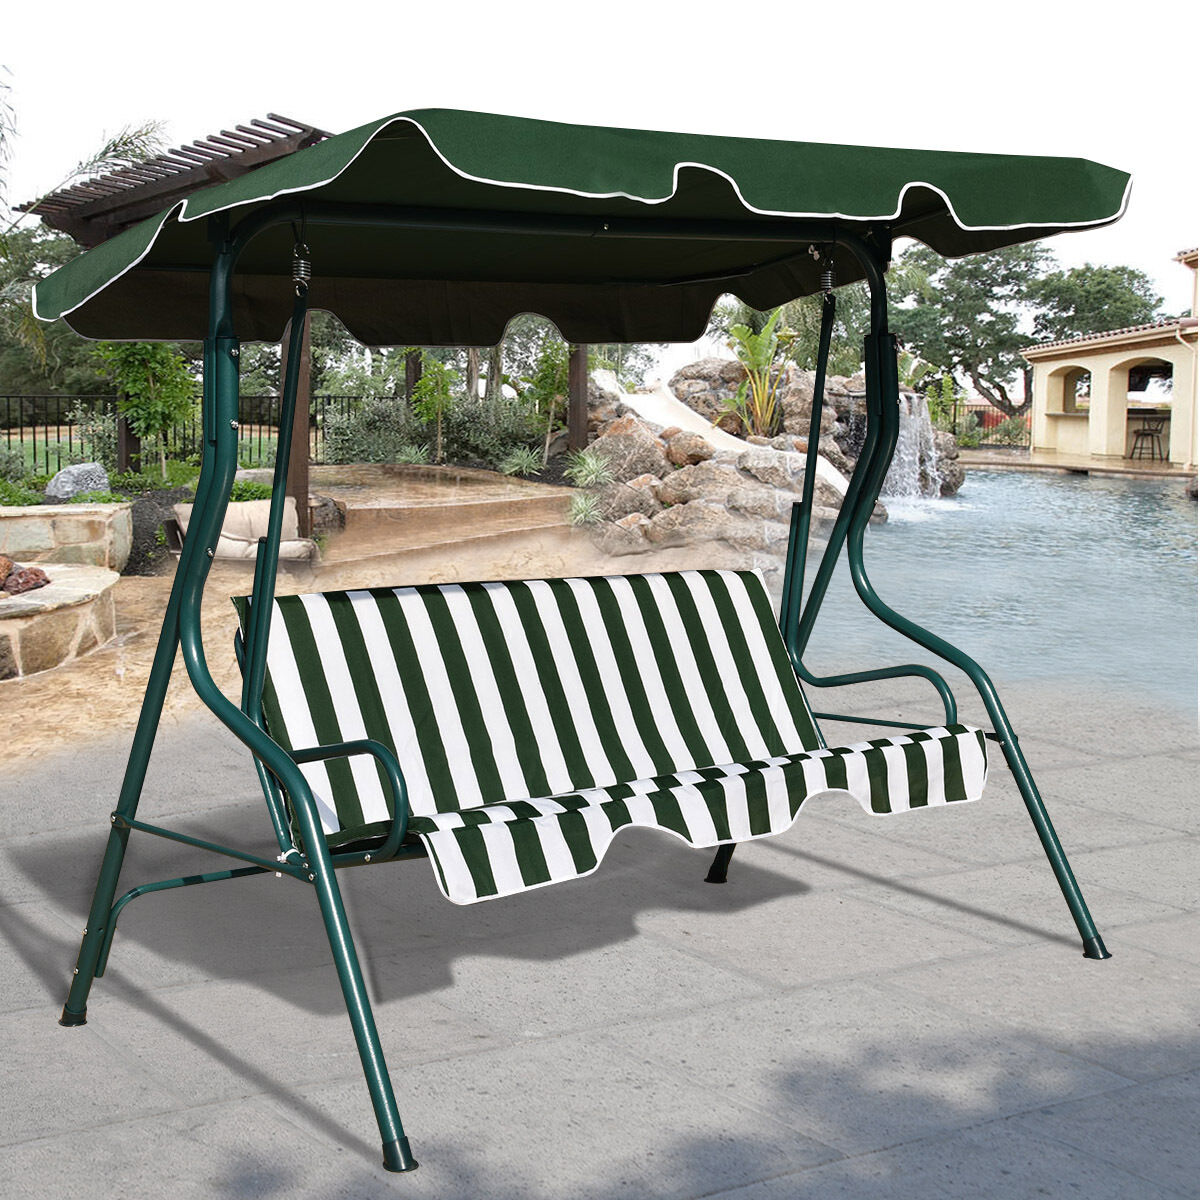 Patio Swing Chair 3 Seater Garden Hammock Swing Seat Outdoor Bench Chair